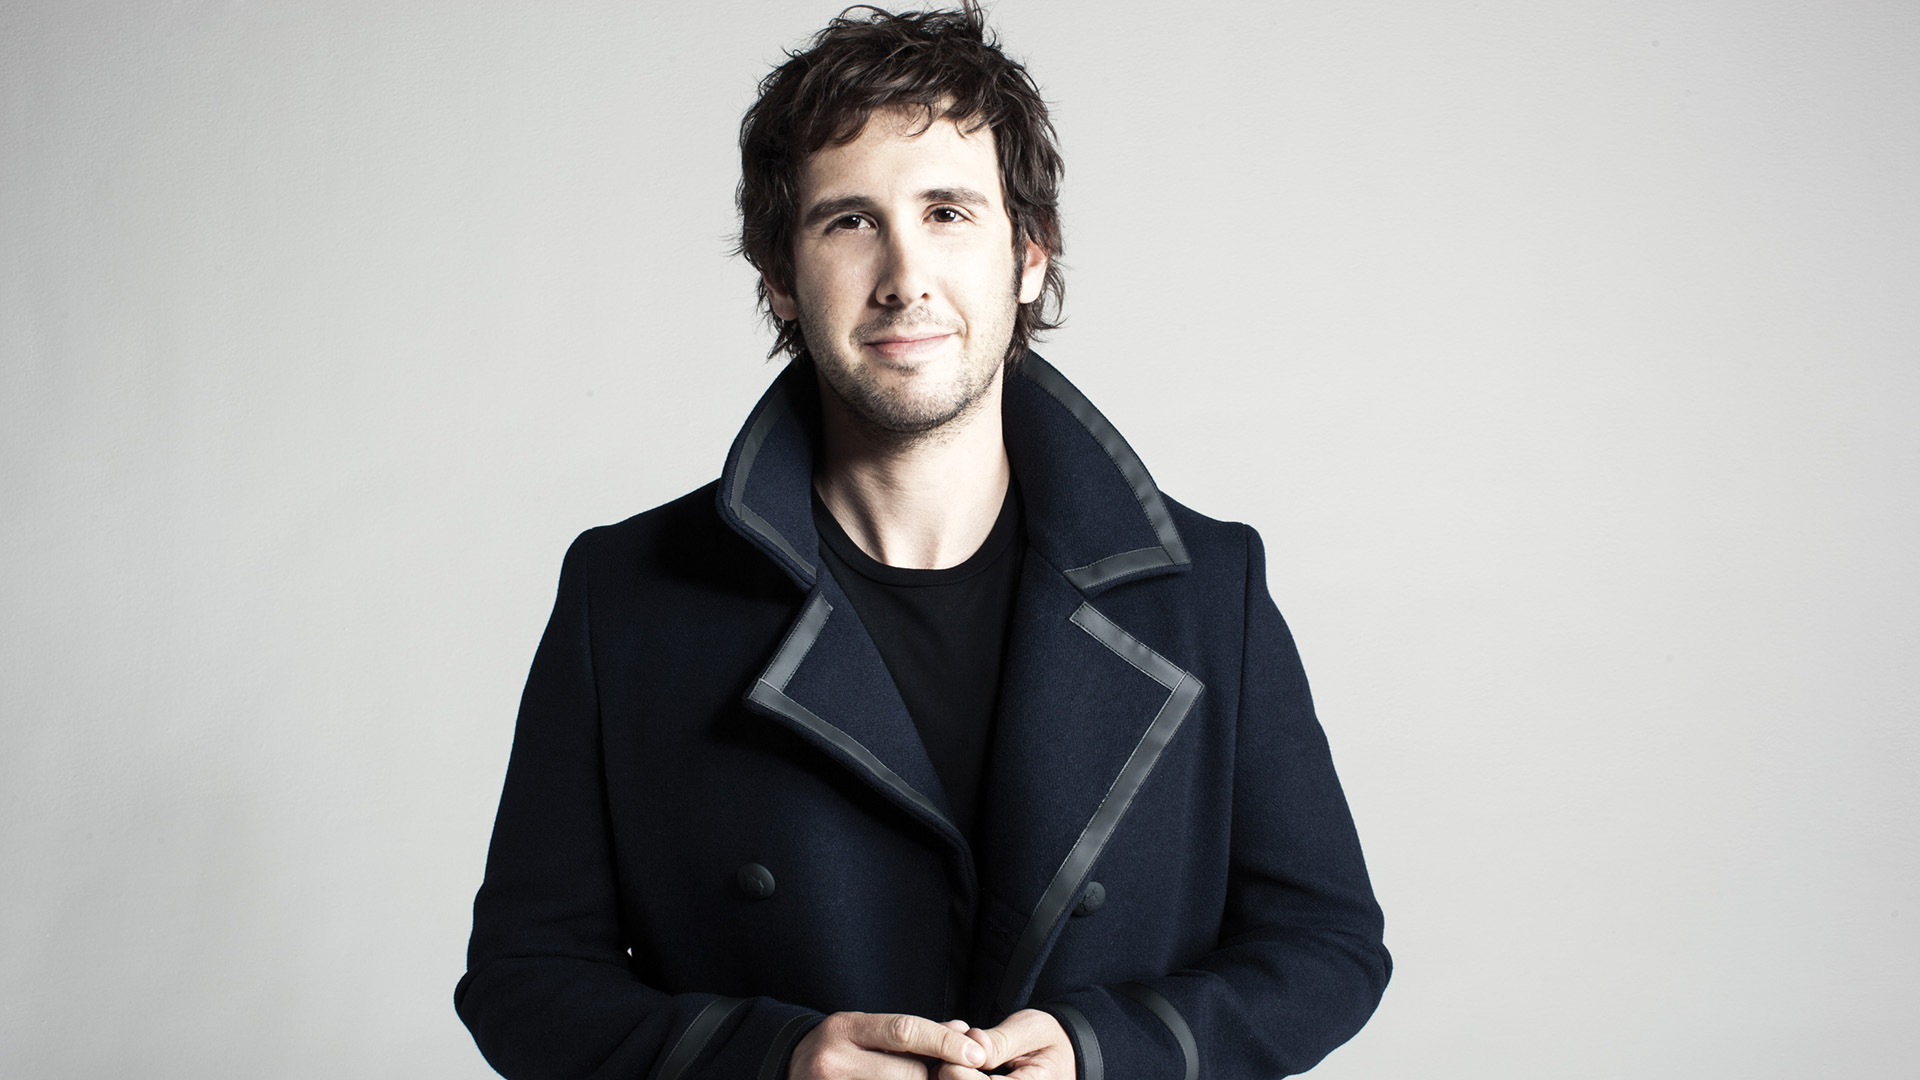 Angels We Have Heard On High av Josh Groban